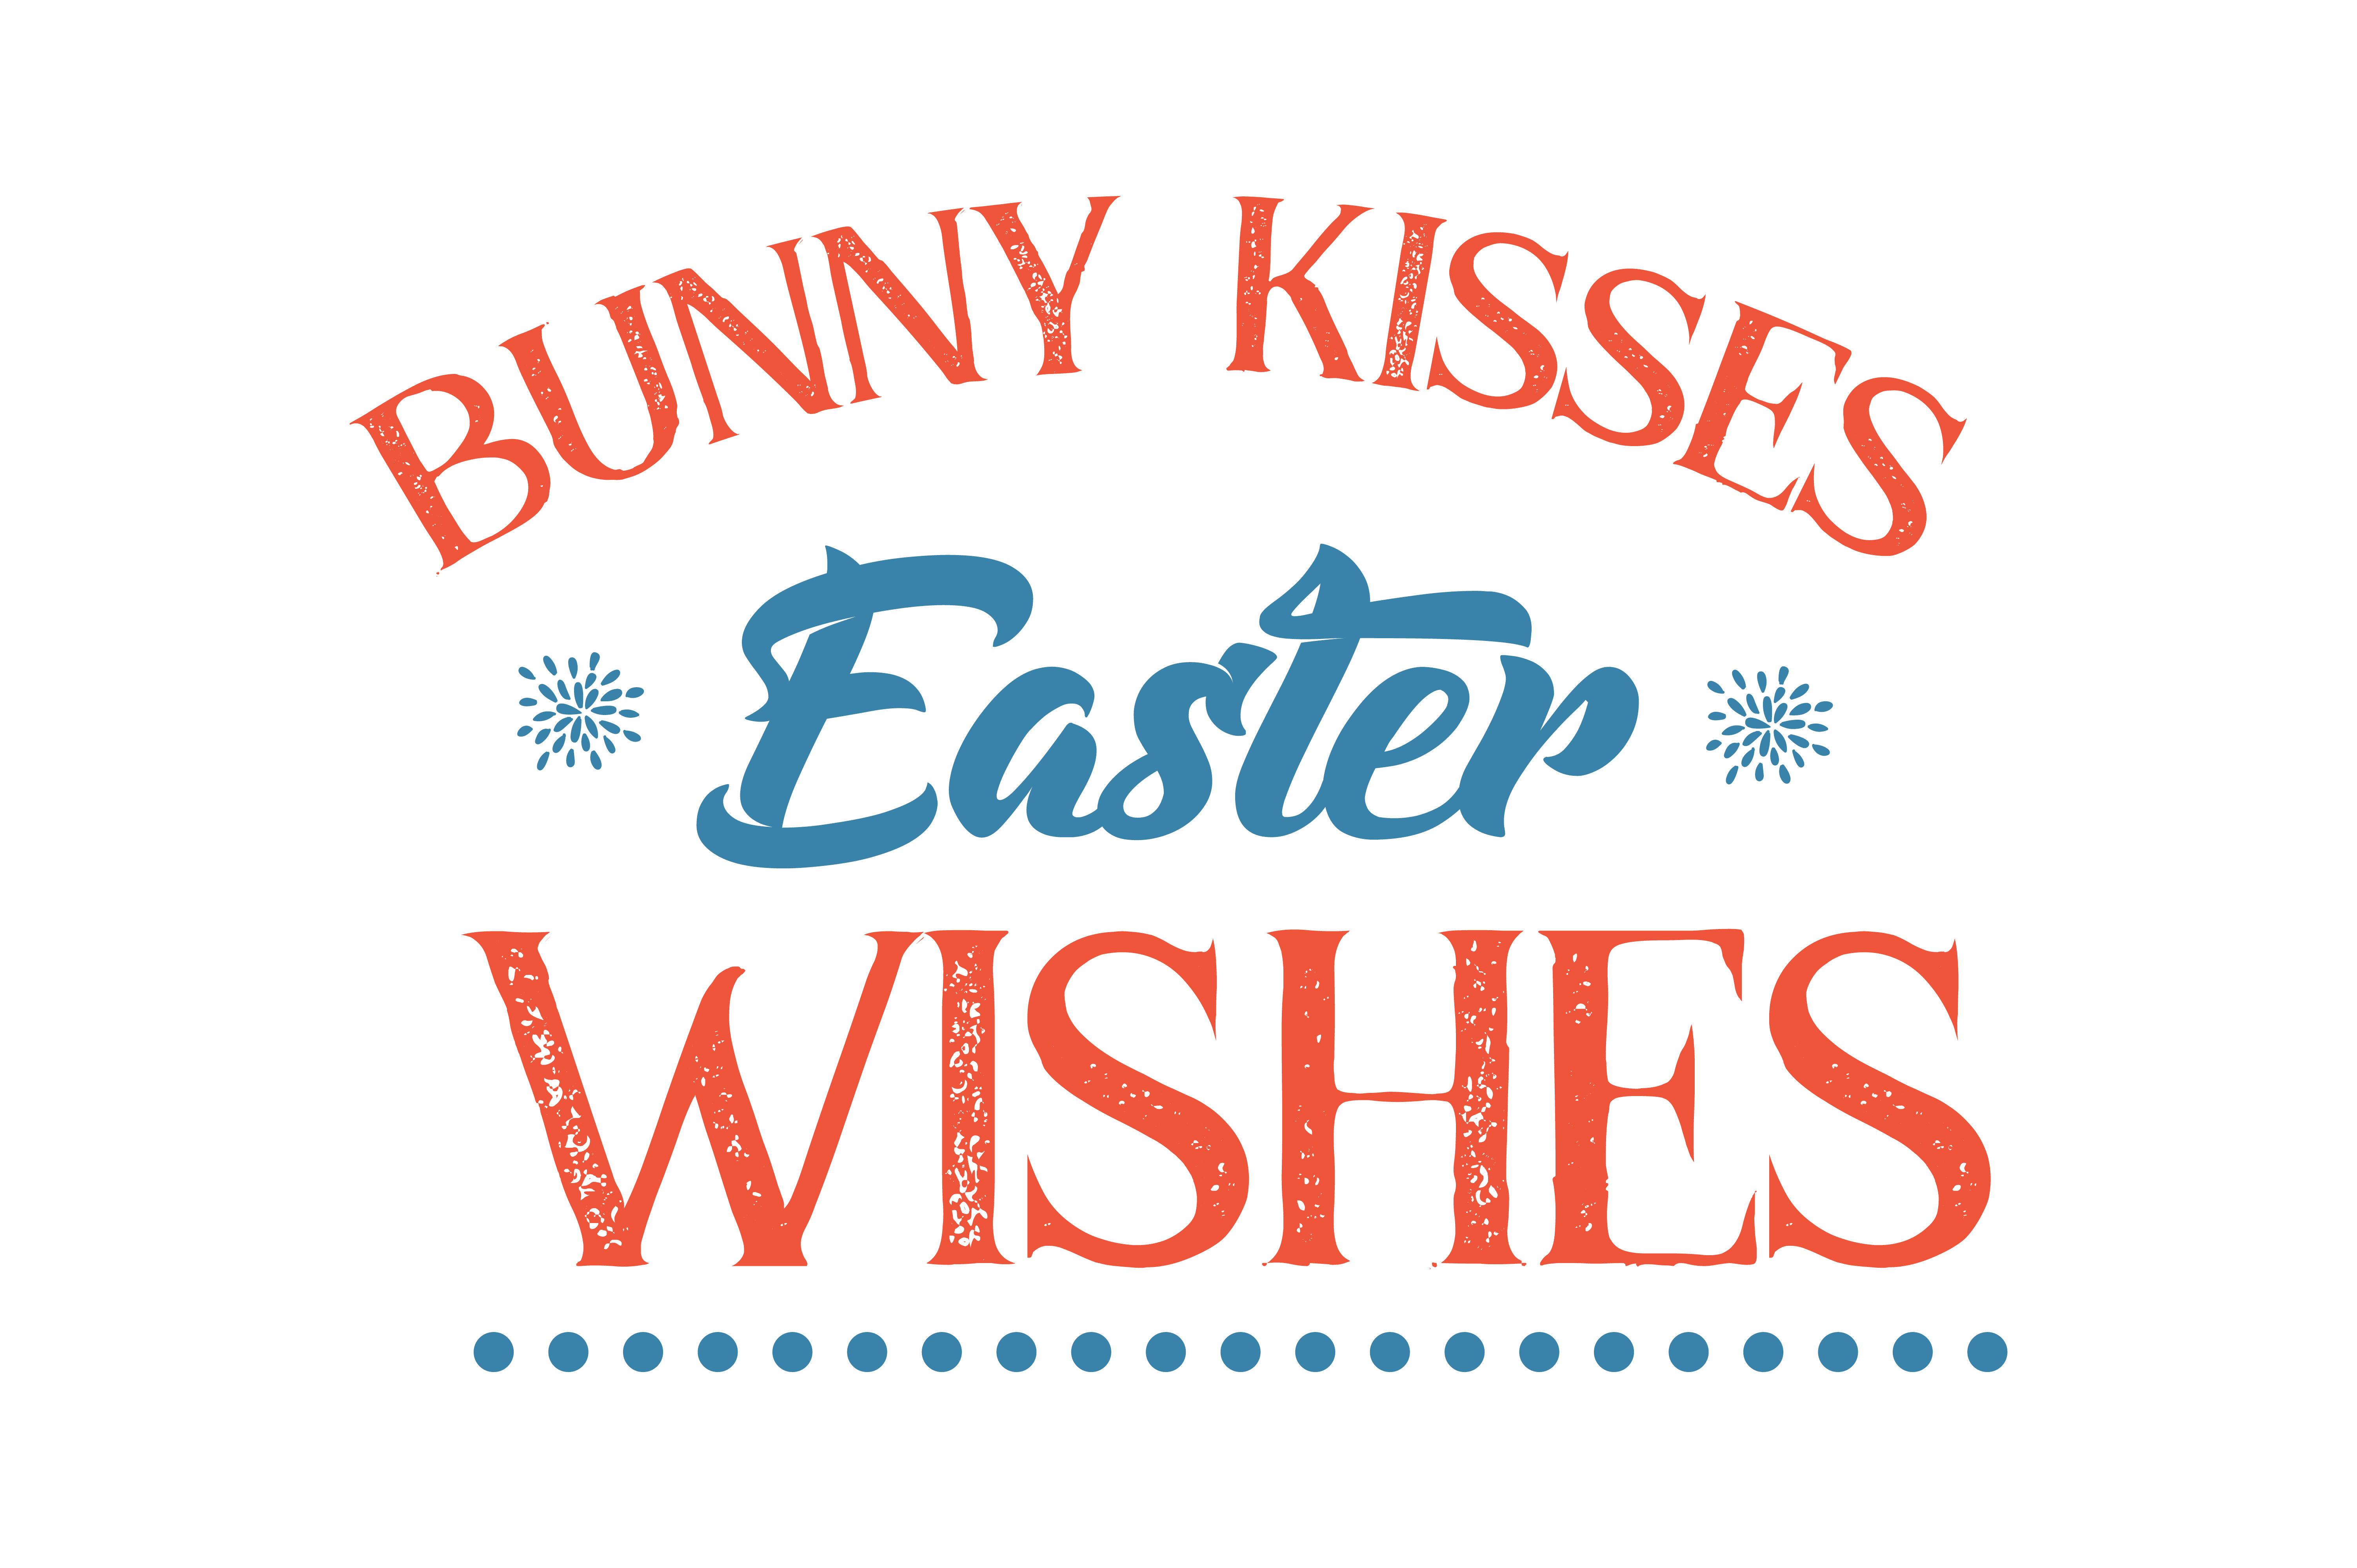 Download Free Bunny Kisses Easter Wishes Quote Svg Cut Graphic By Thelucky for Cricut Explore, Silhouette and other cutting machines.